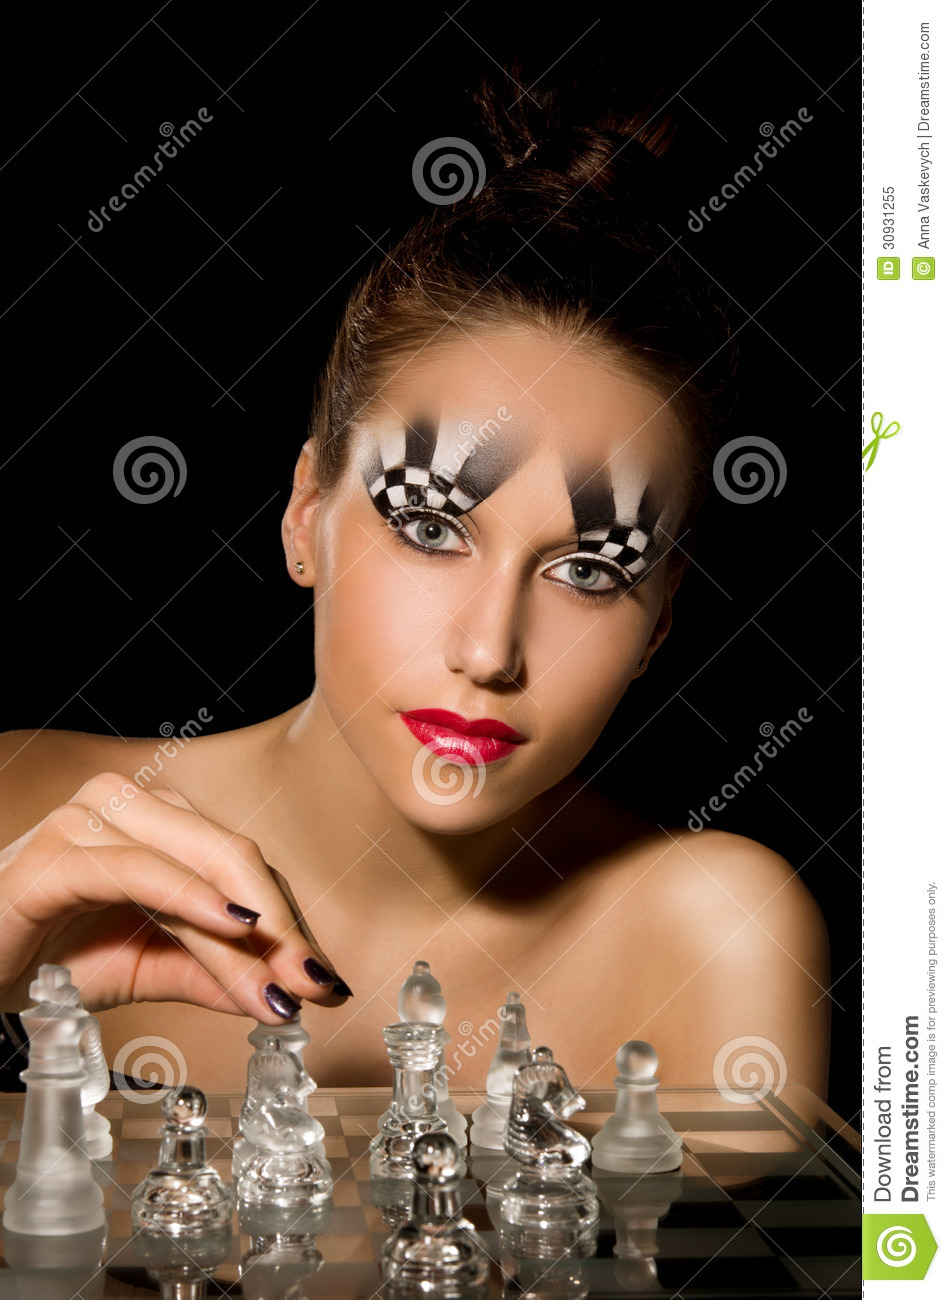 Make Up Art In The Form Of Chessboard Stock Image Image Of Girl